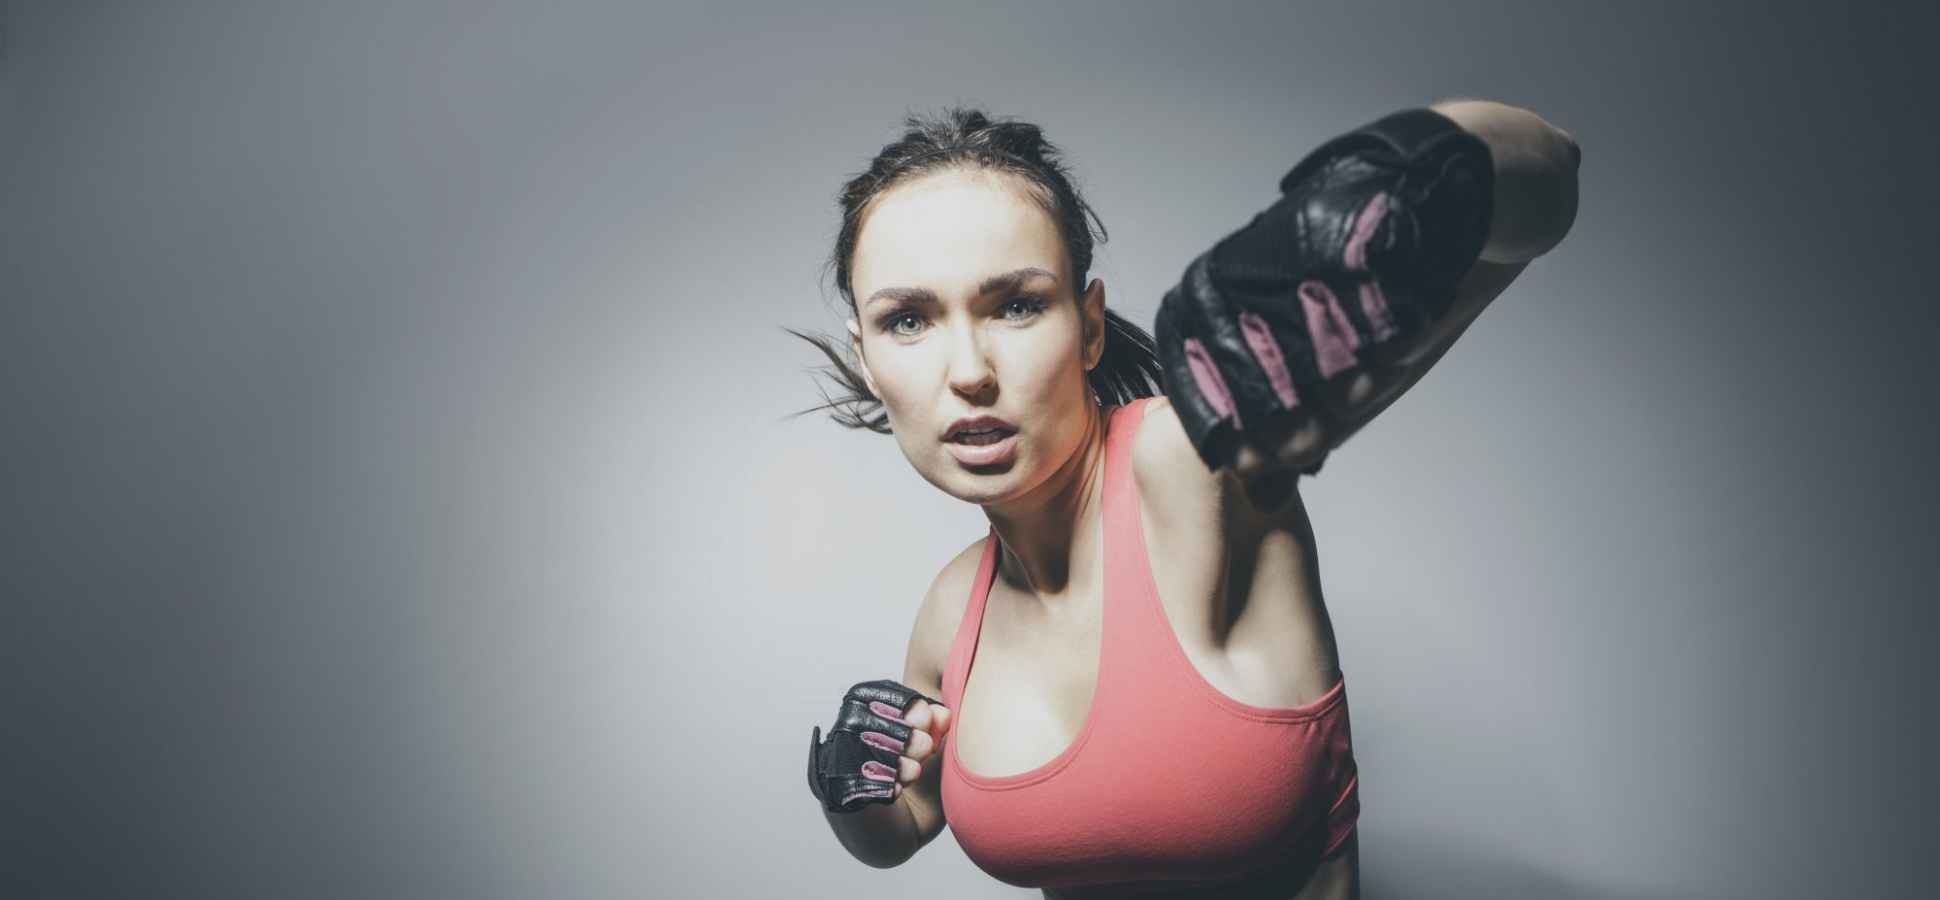 The 10 Traits of Mentally Tough People